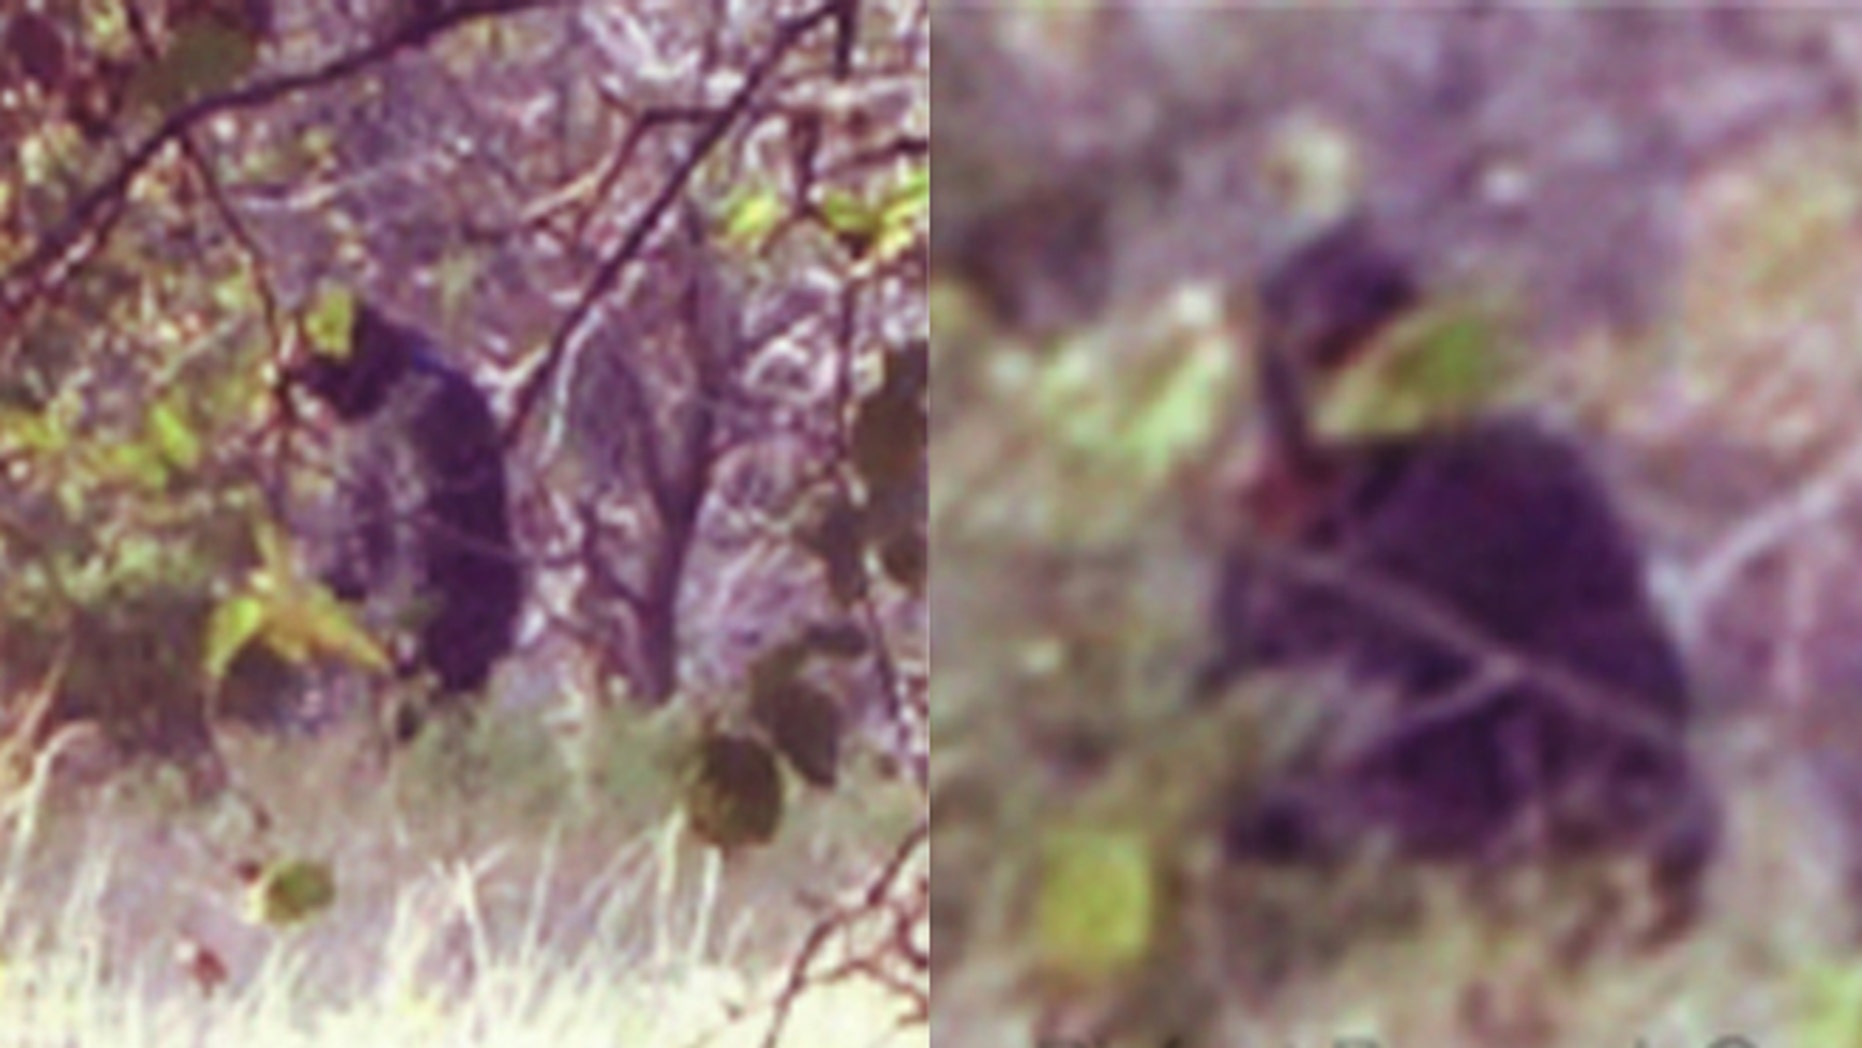 Photographs purportedly show a large, apelike creature in Central Oklahoma -- evidence they may also live in Texas, some say.